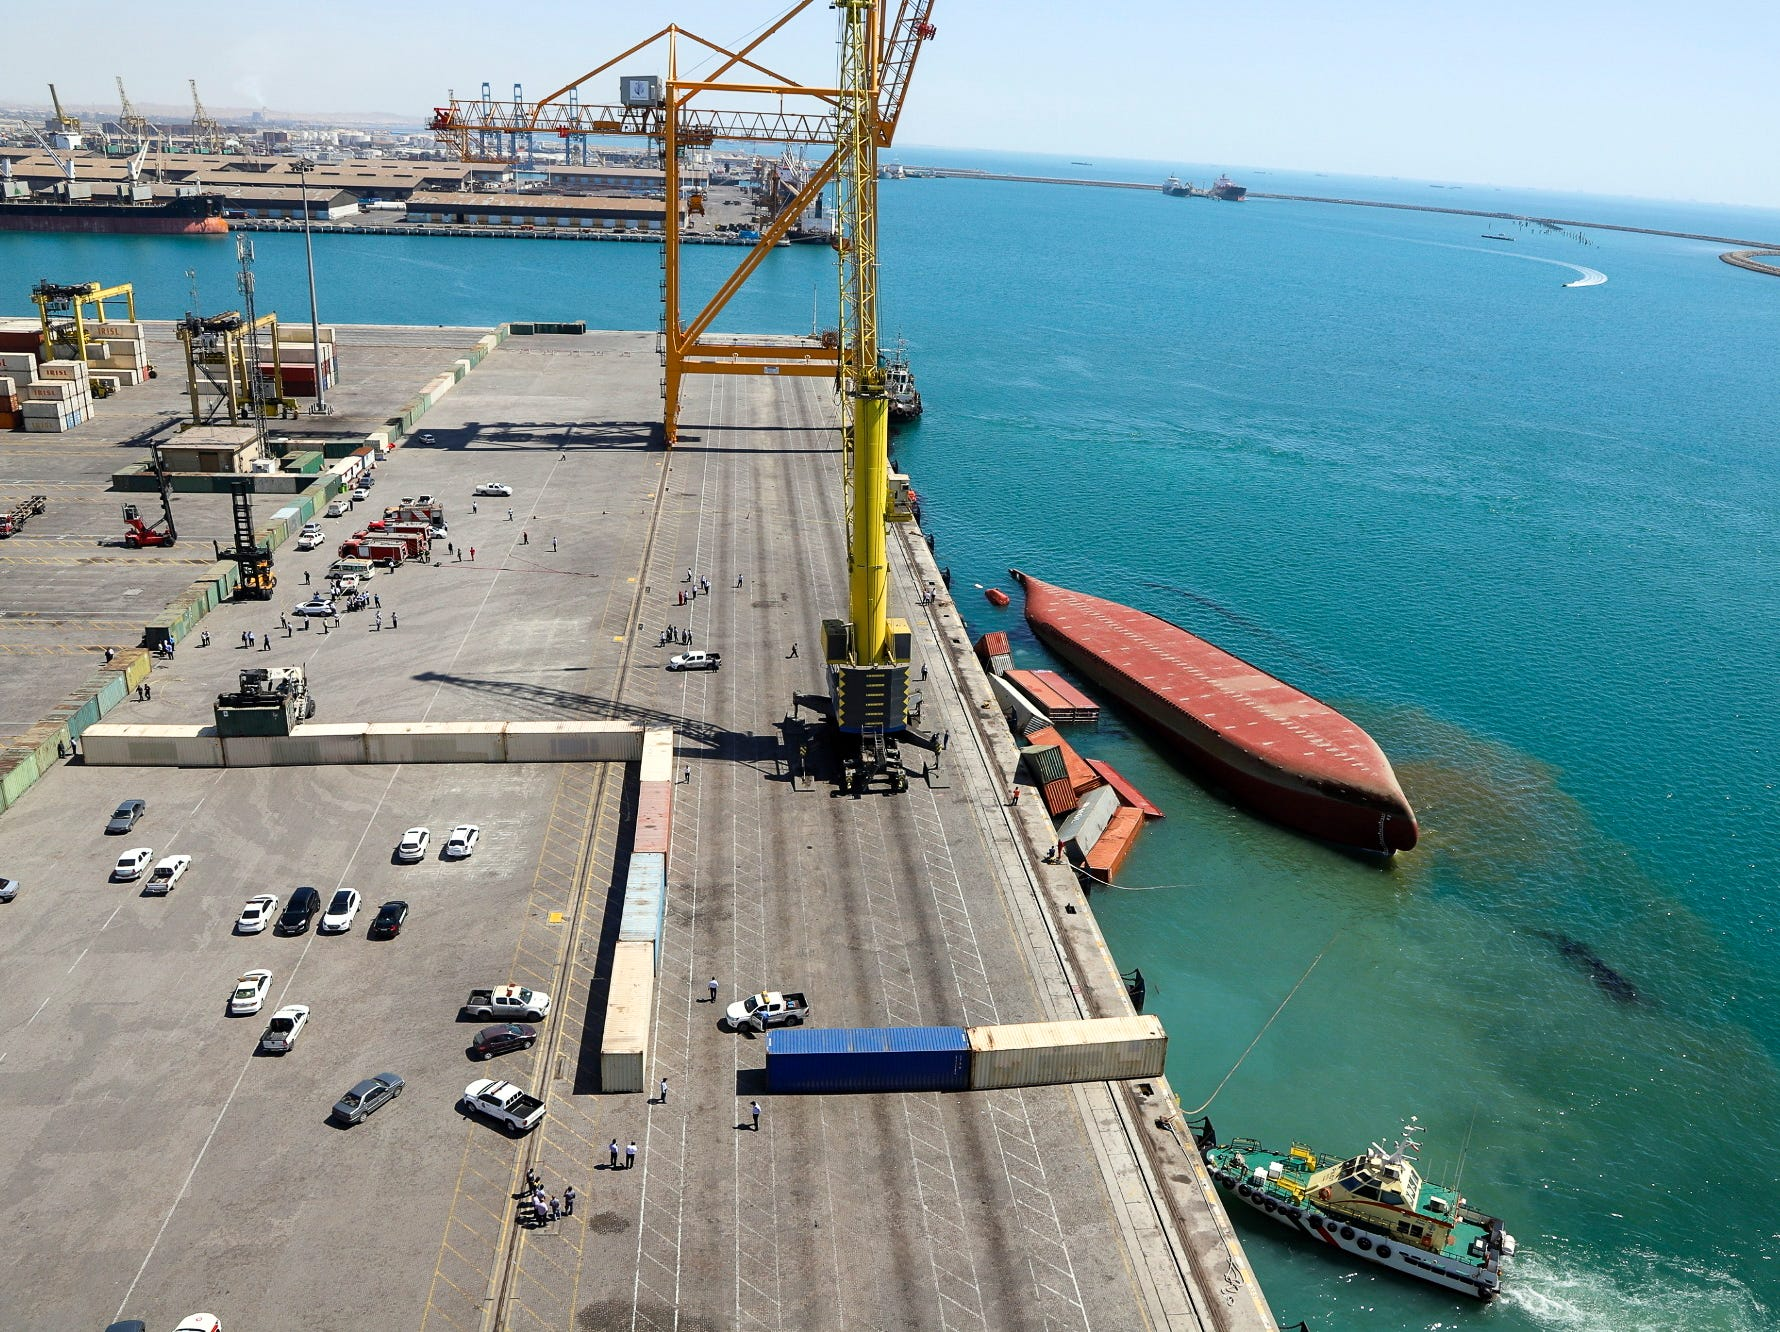 A capsized cargo ship bobs next to a dock in the southern port of Bandar Abbas, Iran, Tuesday, March 19, 2019. Iranian state TV says careless loading of cargo flipped the vessel, sending port workers scrambling to retrieve some of the 153 submerged containers.